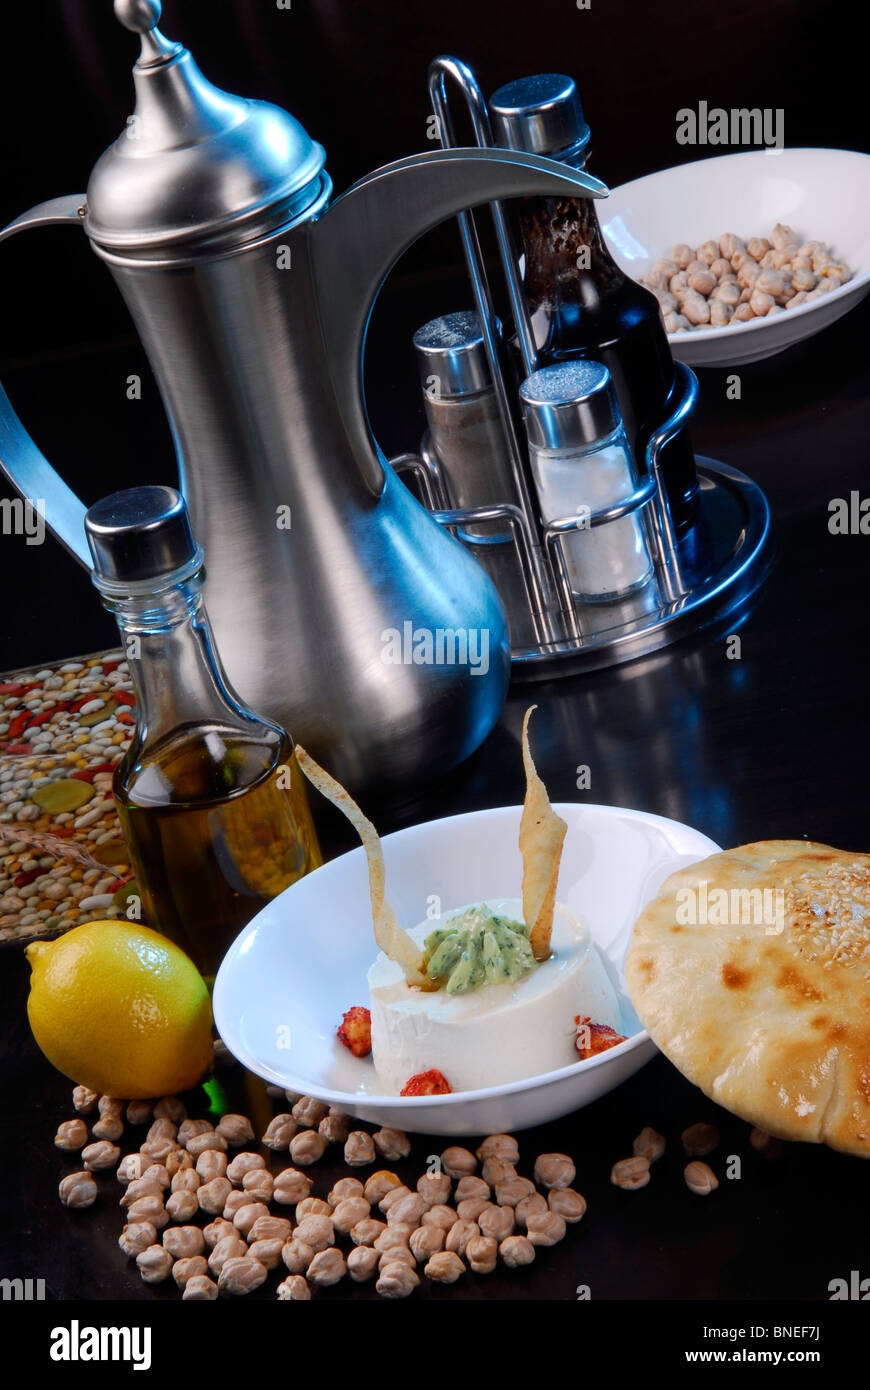 Arabic food humus,arranged with traditional kettle,olive oil and peas. - Stock Image